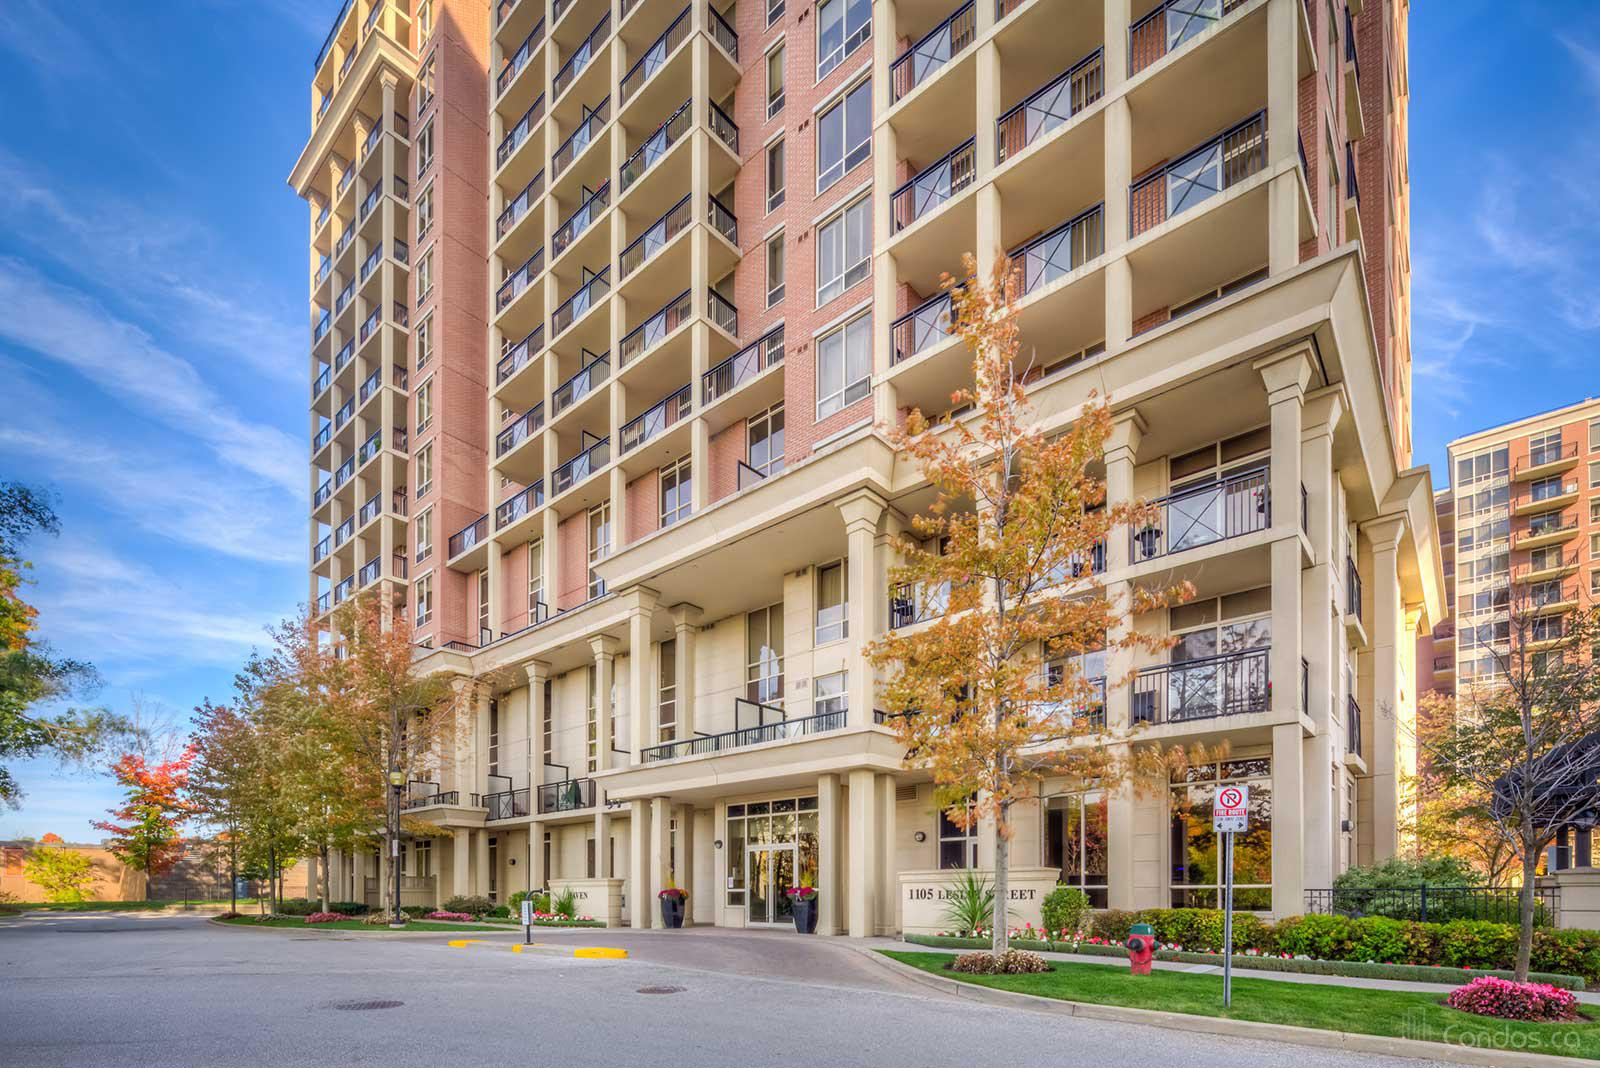 The Haven at Carrington Park at 1105 Leslie St, Toronto 1